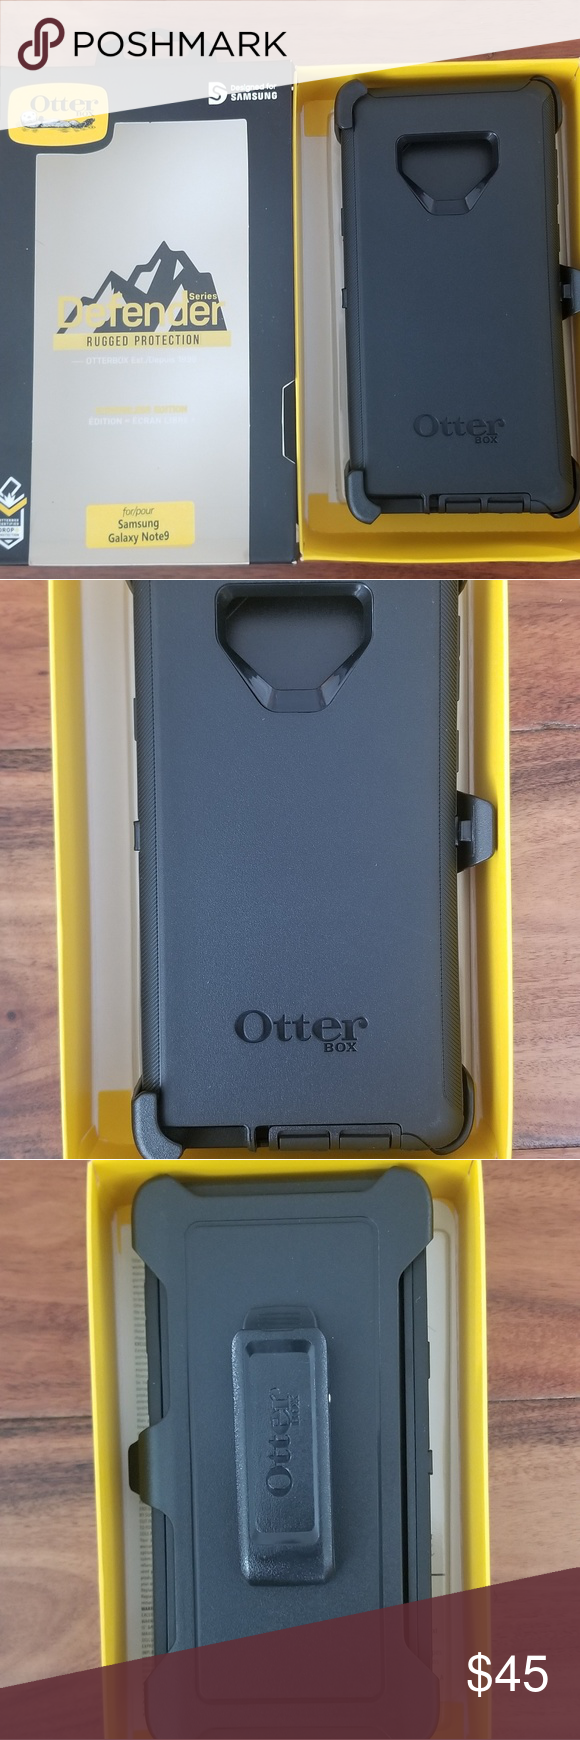 Samsung Galaxy Note 9 Otterbox Defender Phone Case NEW Galaxy Note 9